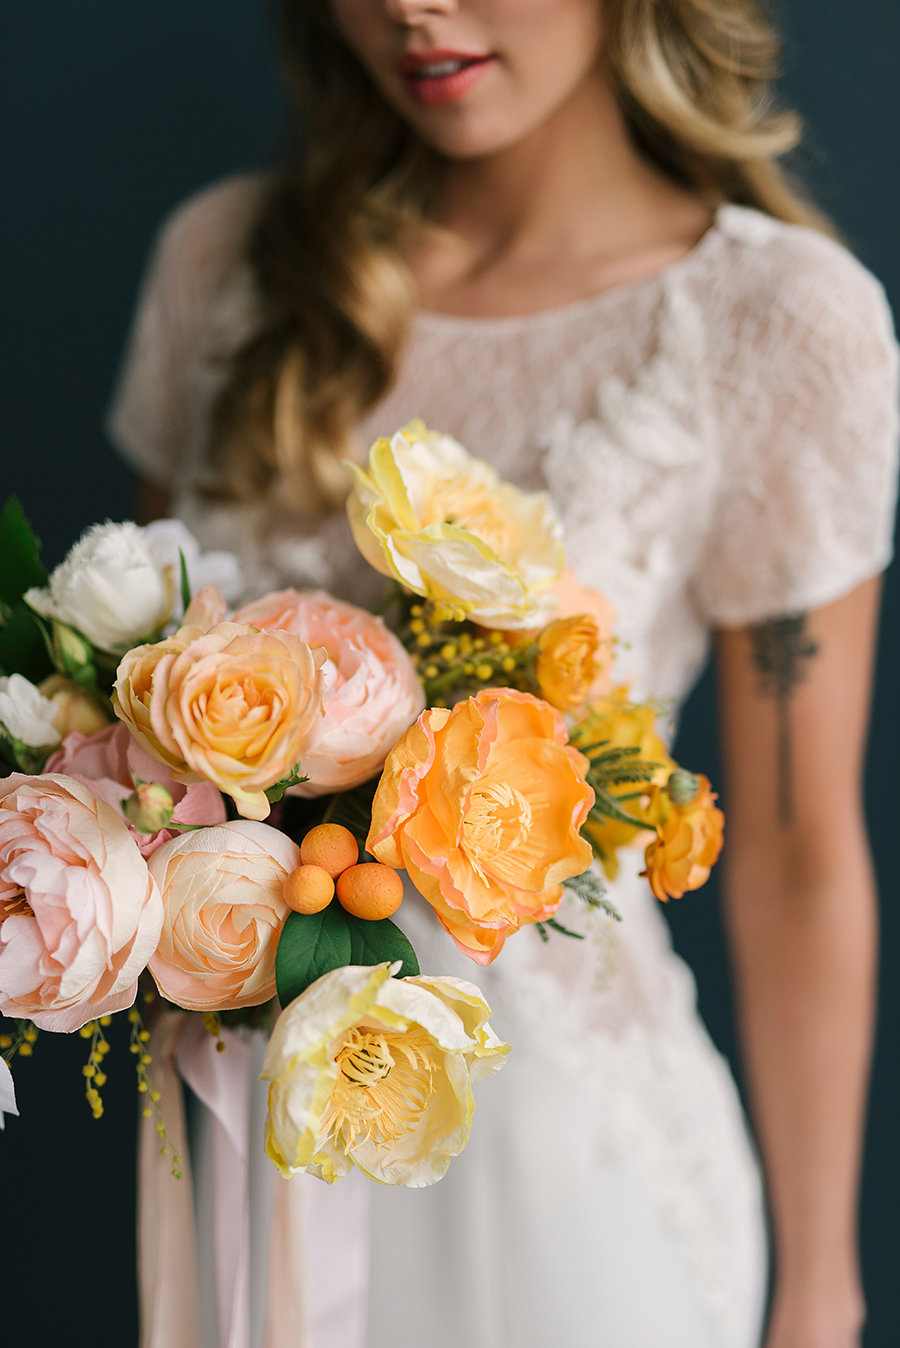 poppy paper flowers - photo by Ashlee Brooke Photography http://ruffledblog.com/summertime-citrus-wedding-inspiration